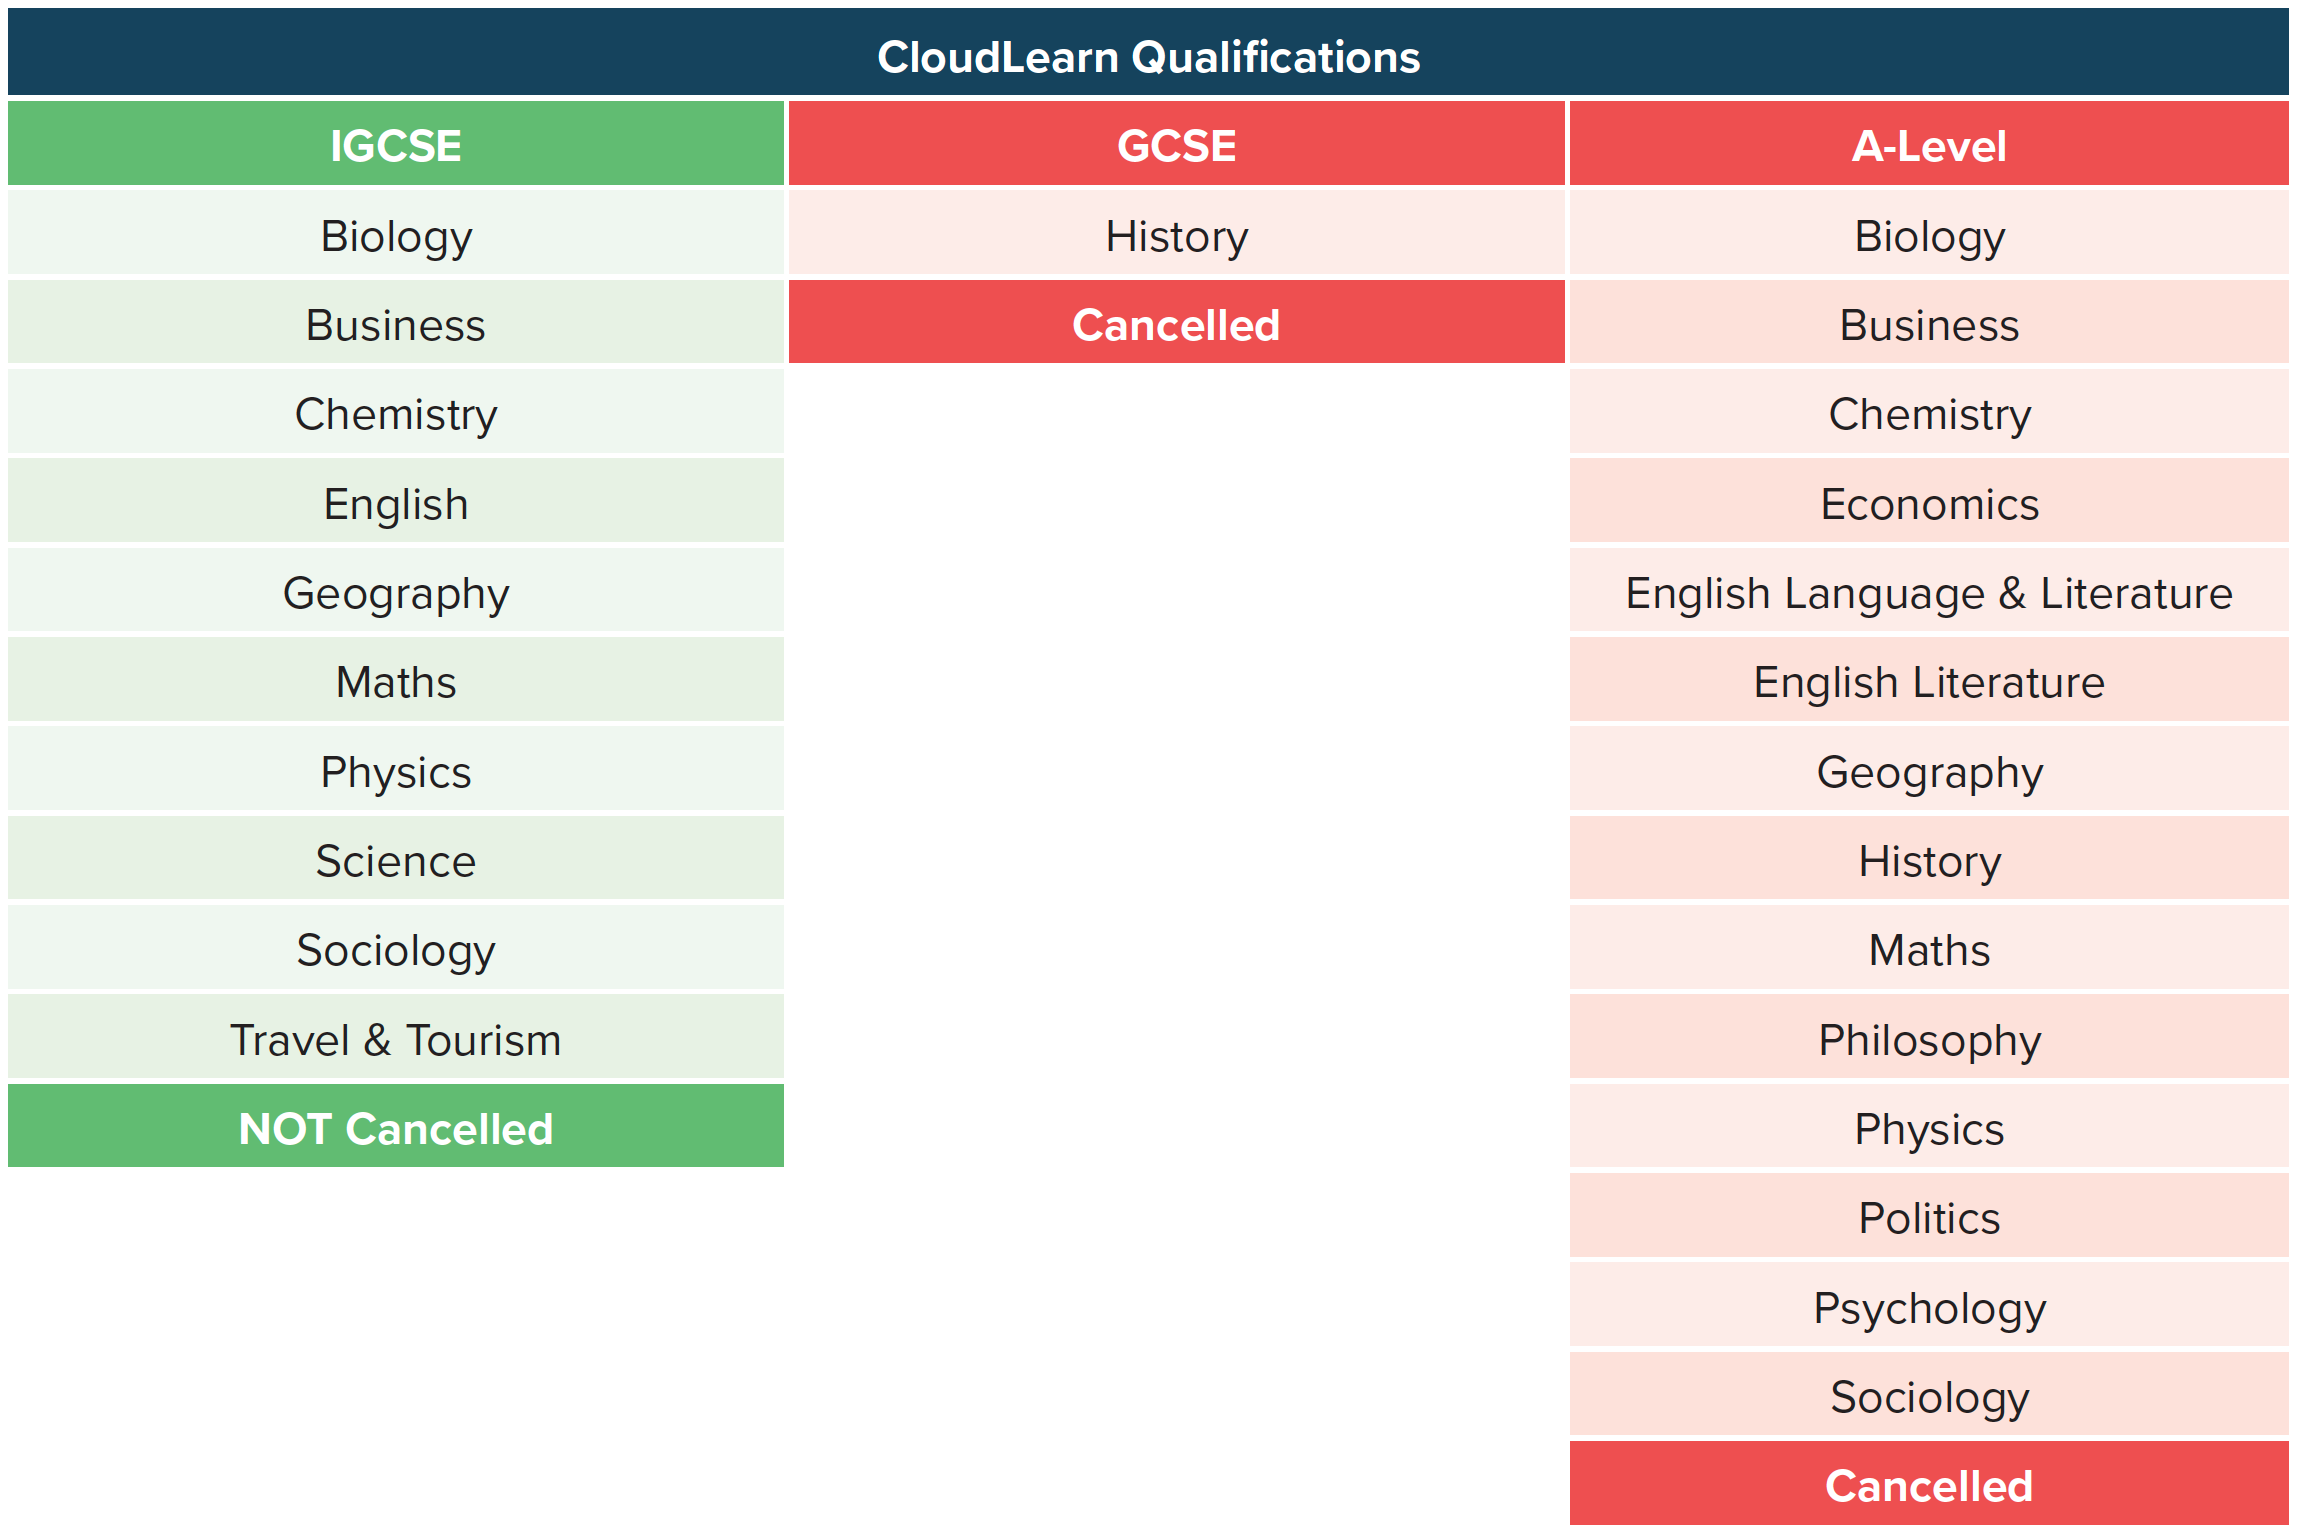 CloudLearn Qualifications